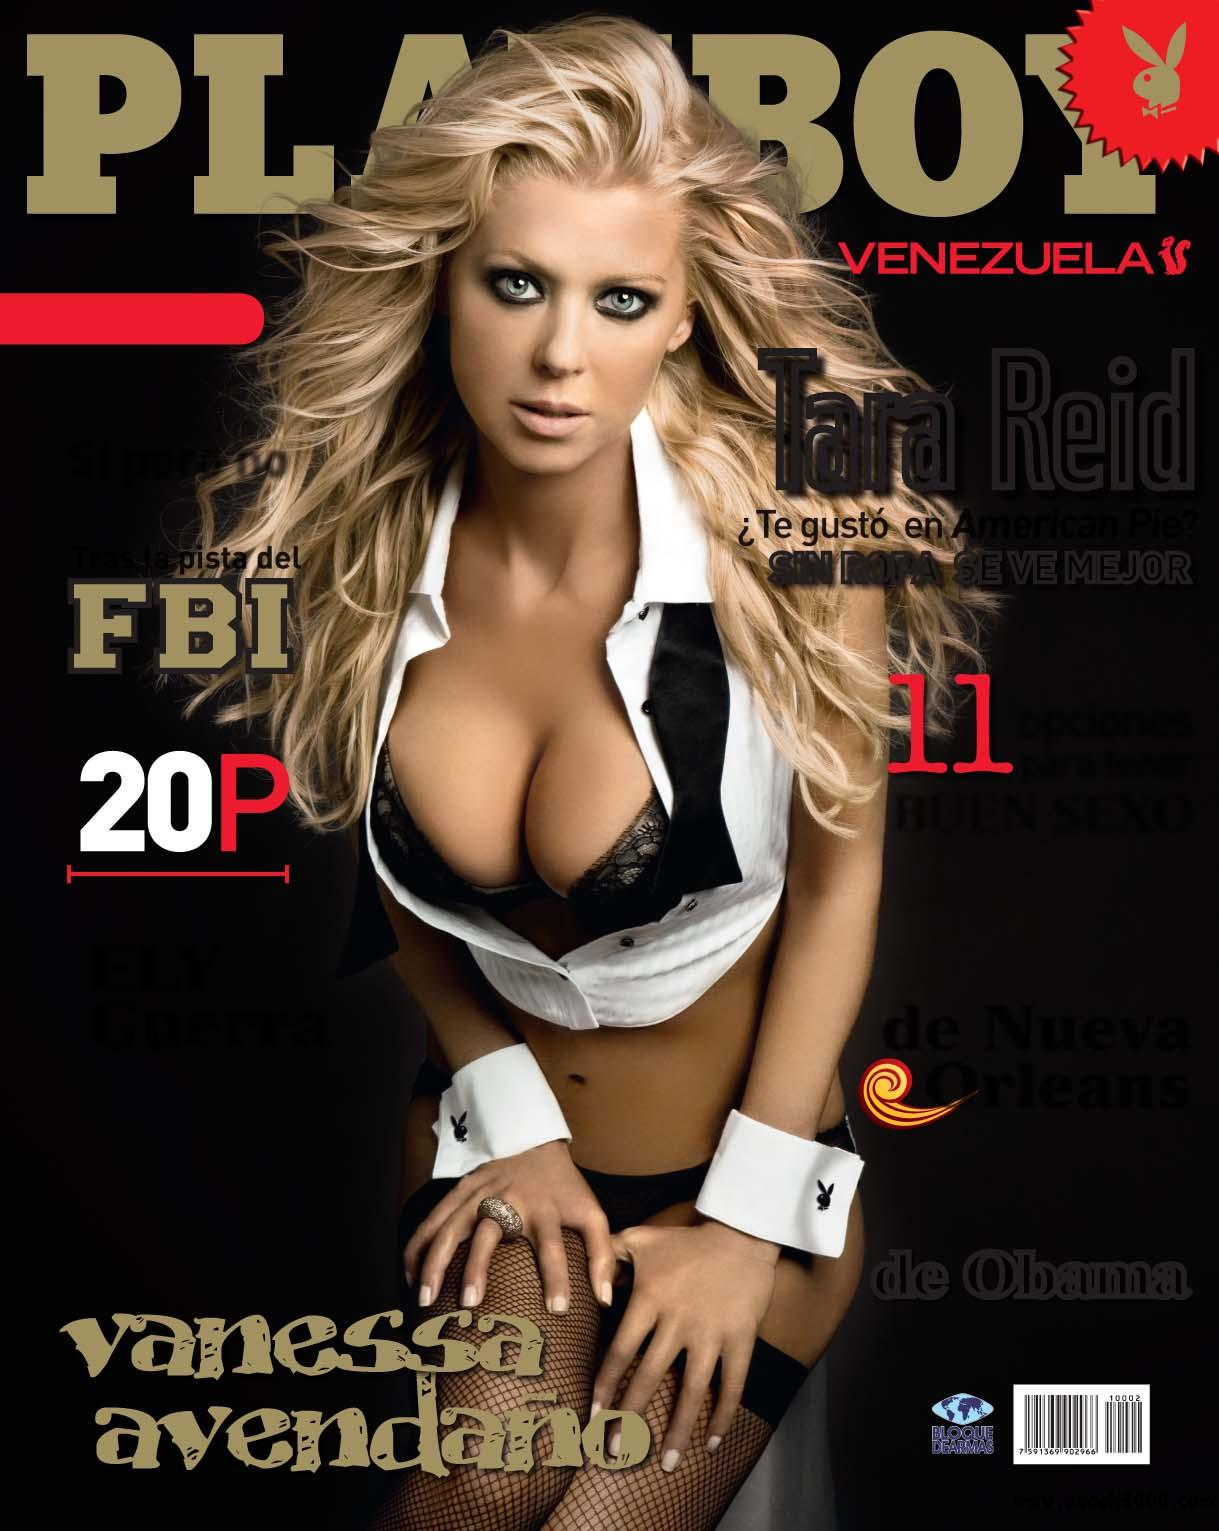 Playboy Venezuela - February 2010 free download